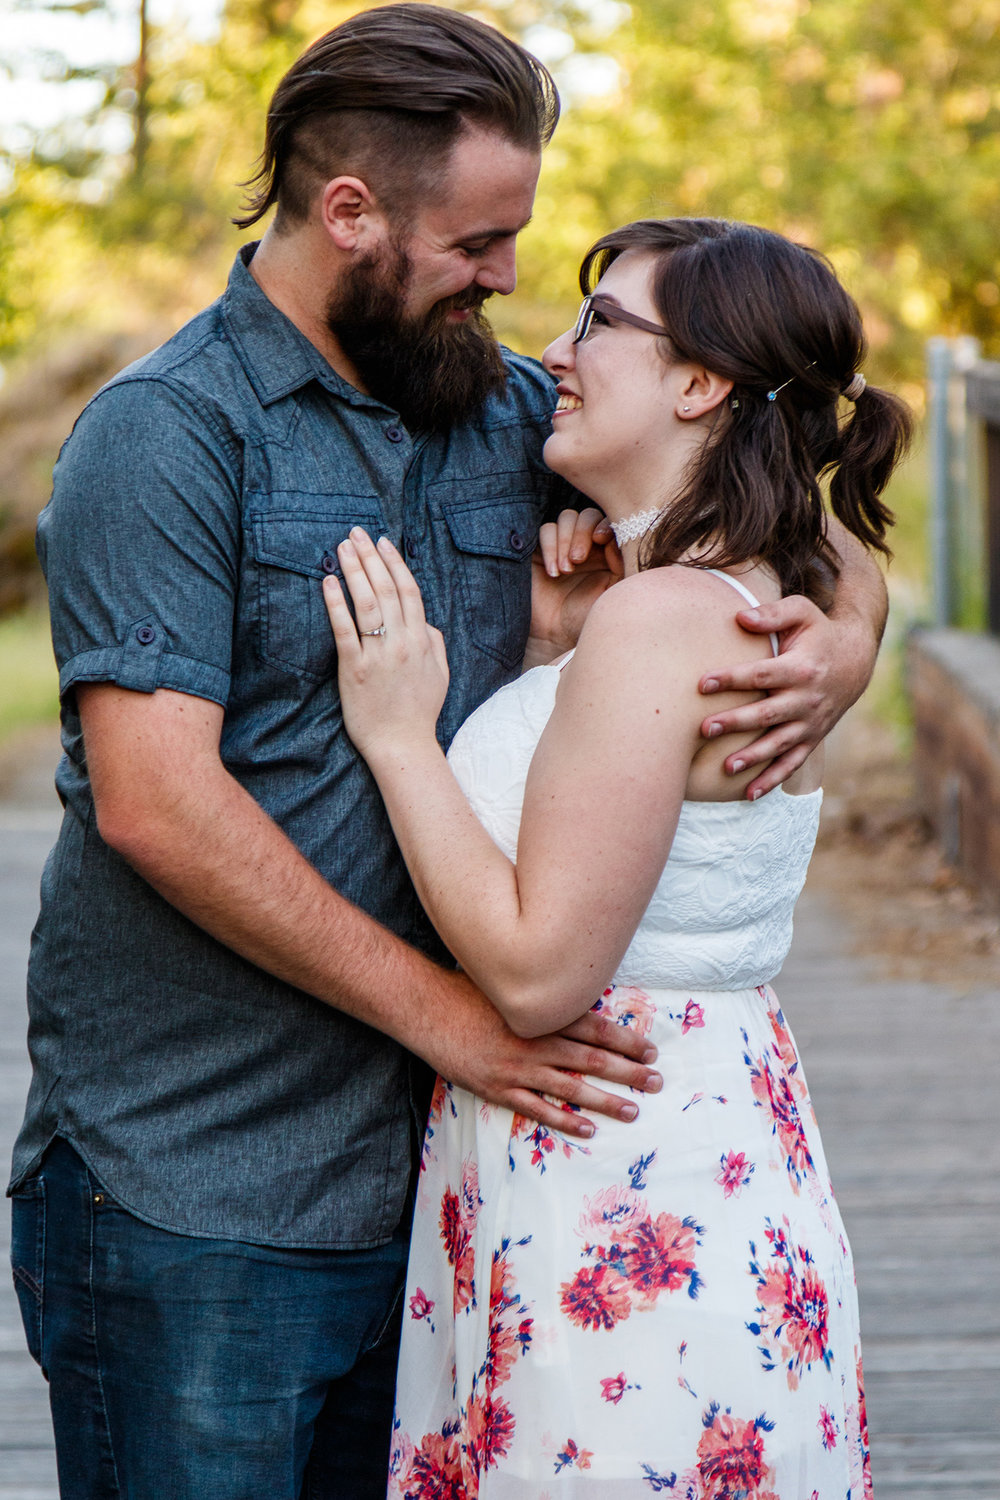 Jon & Ashley Engagement Session-20180602_072.jpg